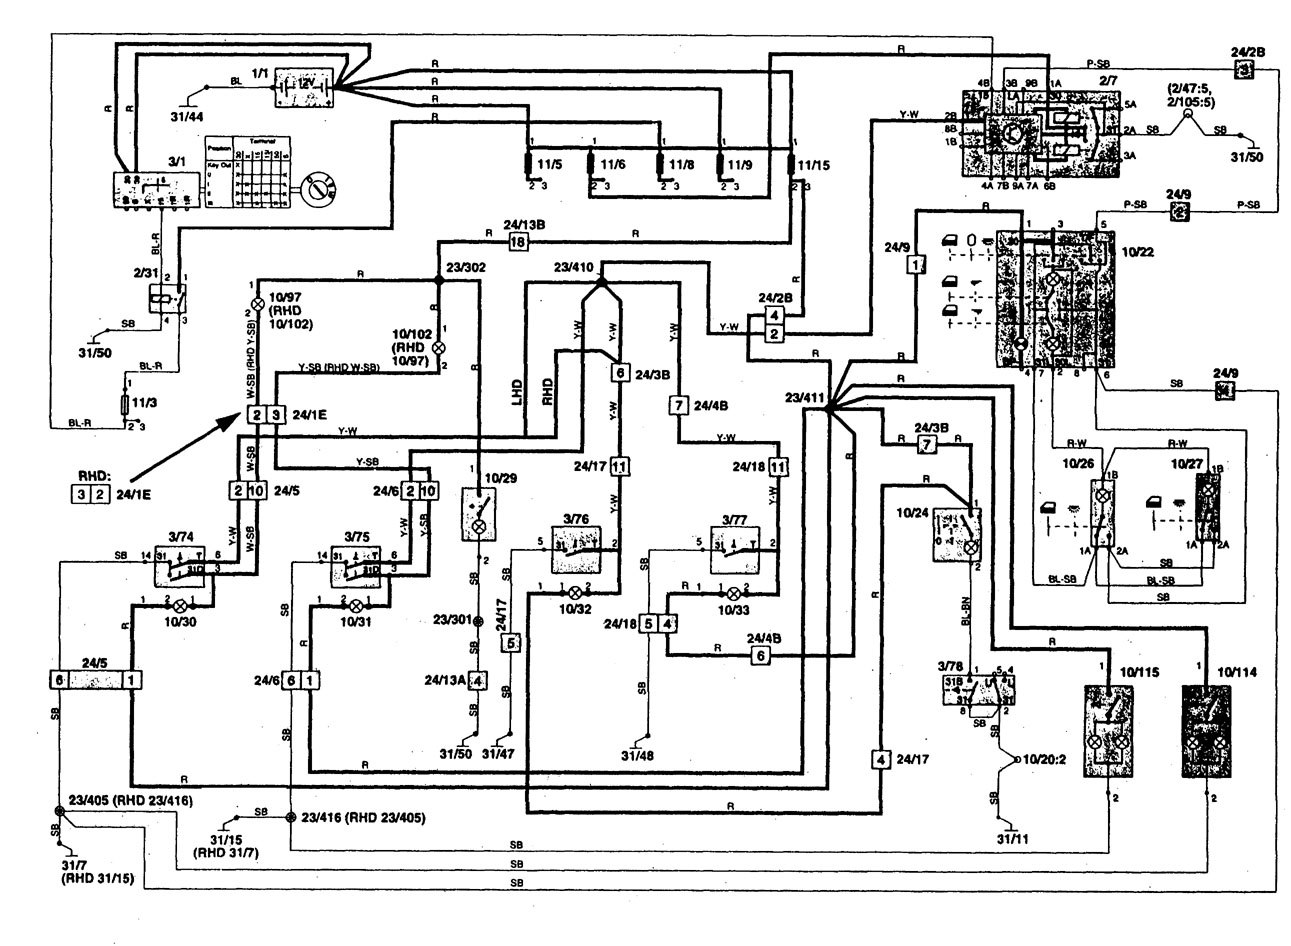 Volvo 850 Pnp Wiring Diagram Library 1994 960 Anti Lock Brake System Electrical 1997 Diagrams Courtesy Lamps